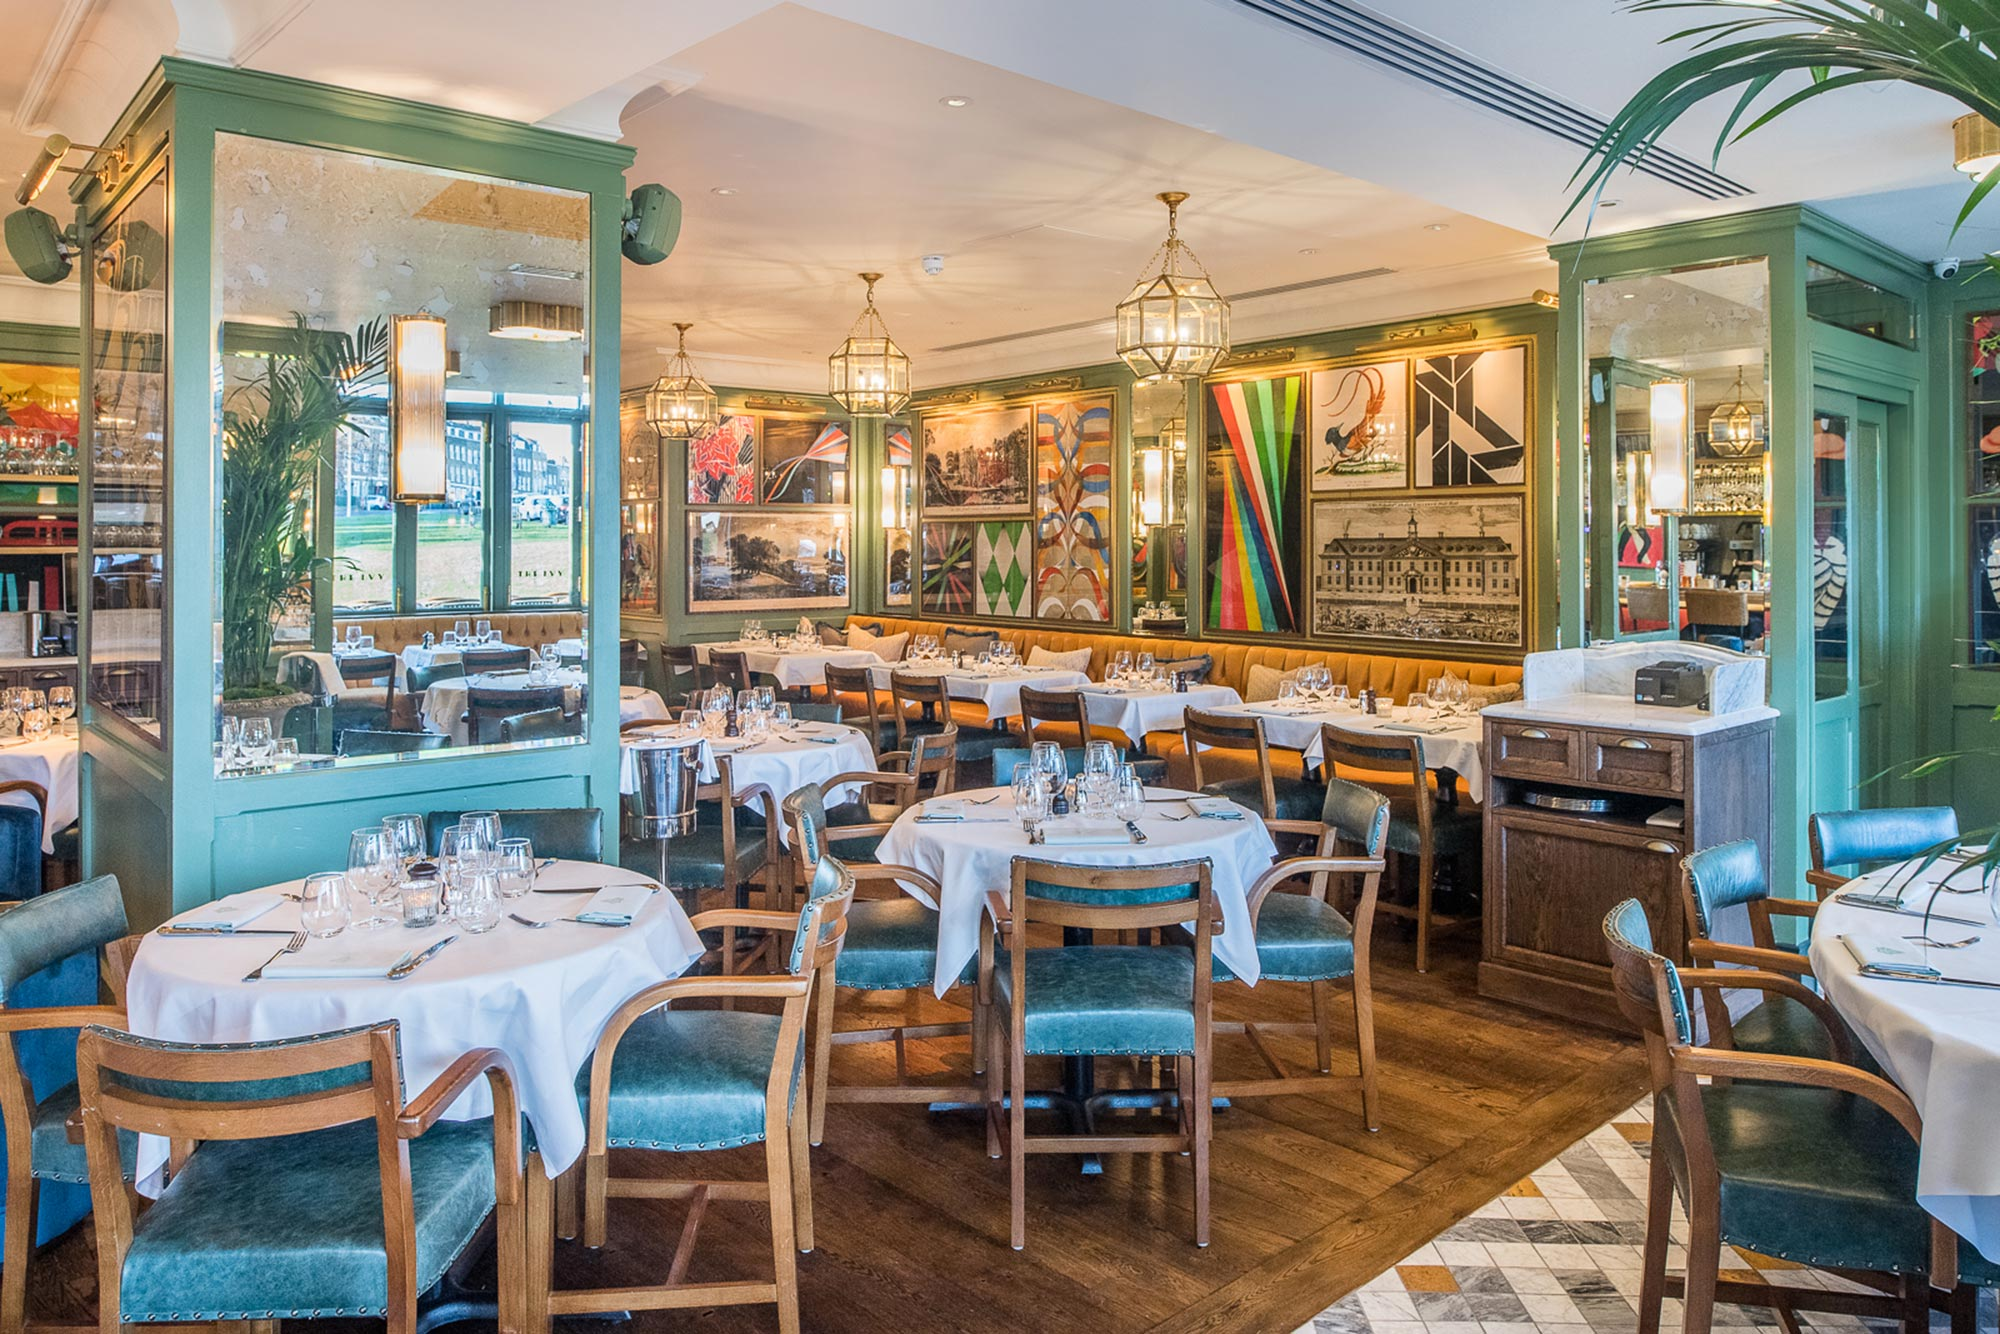 Dining out in Blackheath, The Ivy Cafe, Blackheath - The Ivy Café, Blackheath